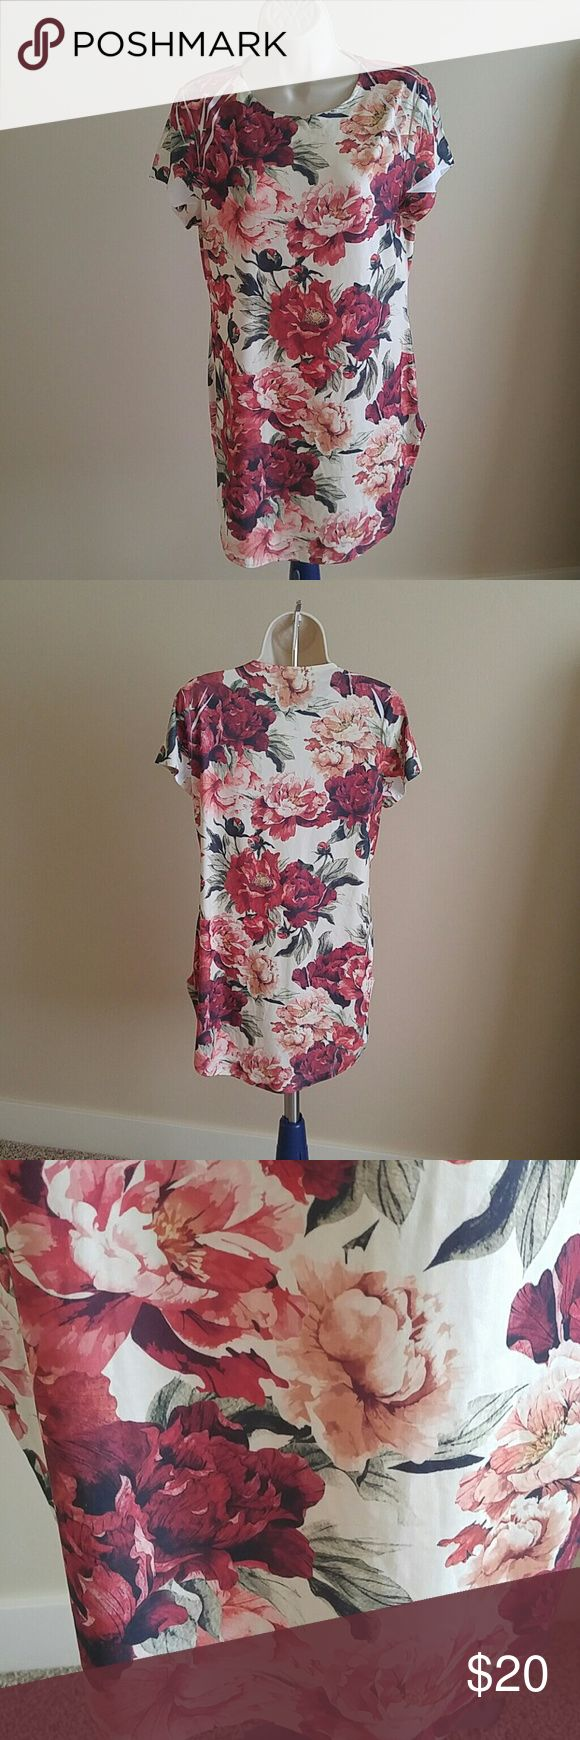 Ivory brushed midi dress Brand new just no tag. A flowers design midi dress the fabric is stretchy and it fitted to the body to show your curve. It can wear by the petite or medium size woman  we store our product in a smoke free home and we promise to ship our product as soon as we can Dresses Midi